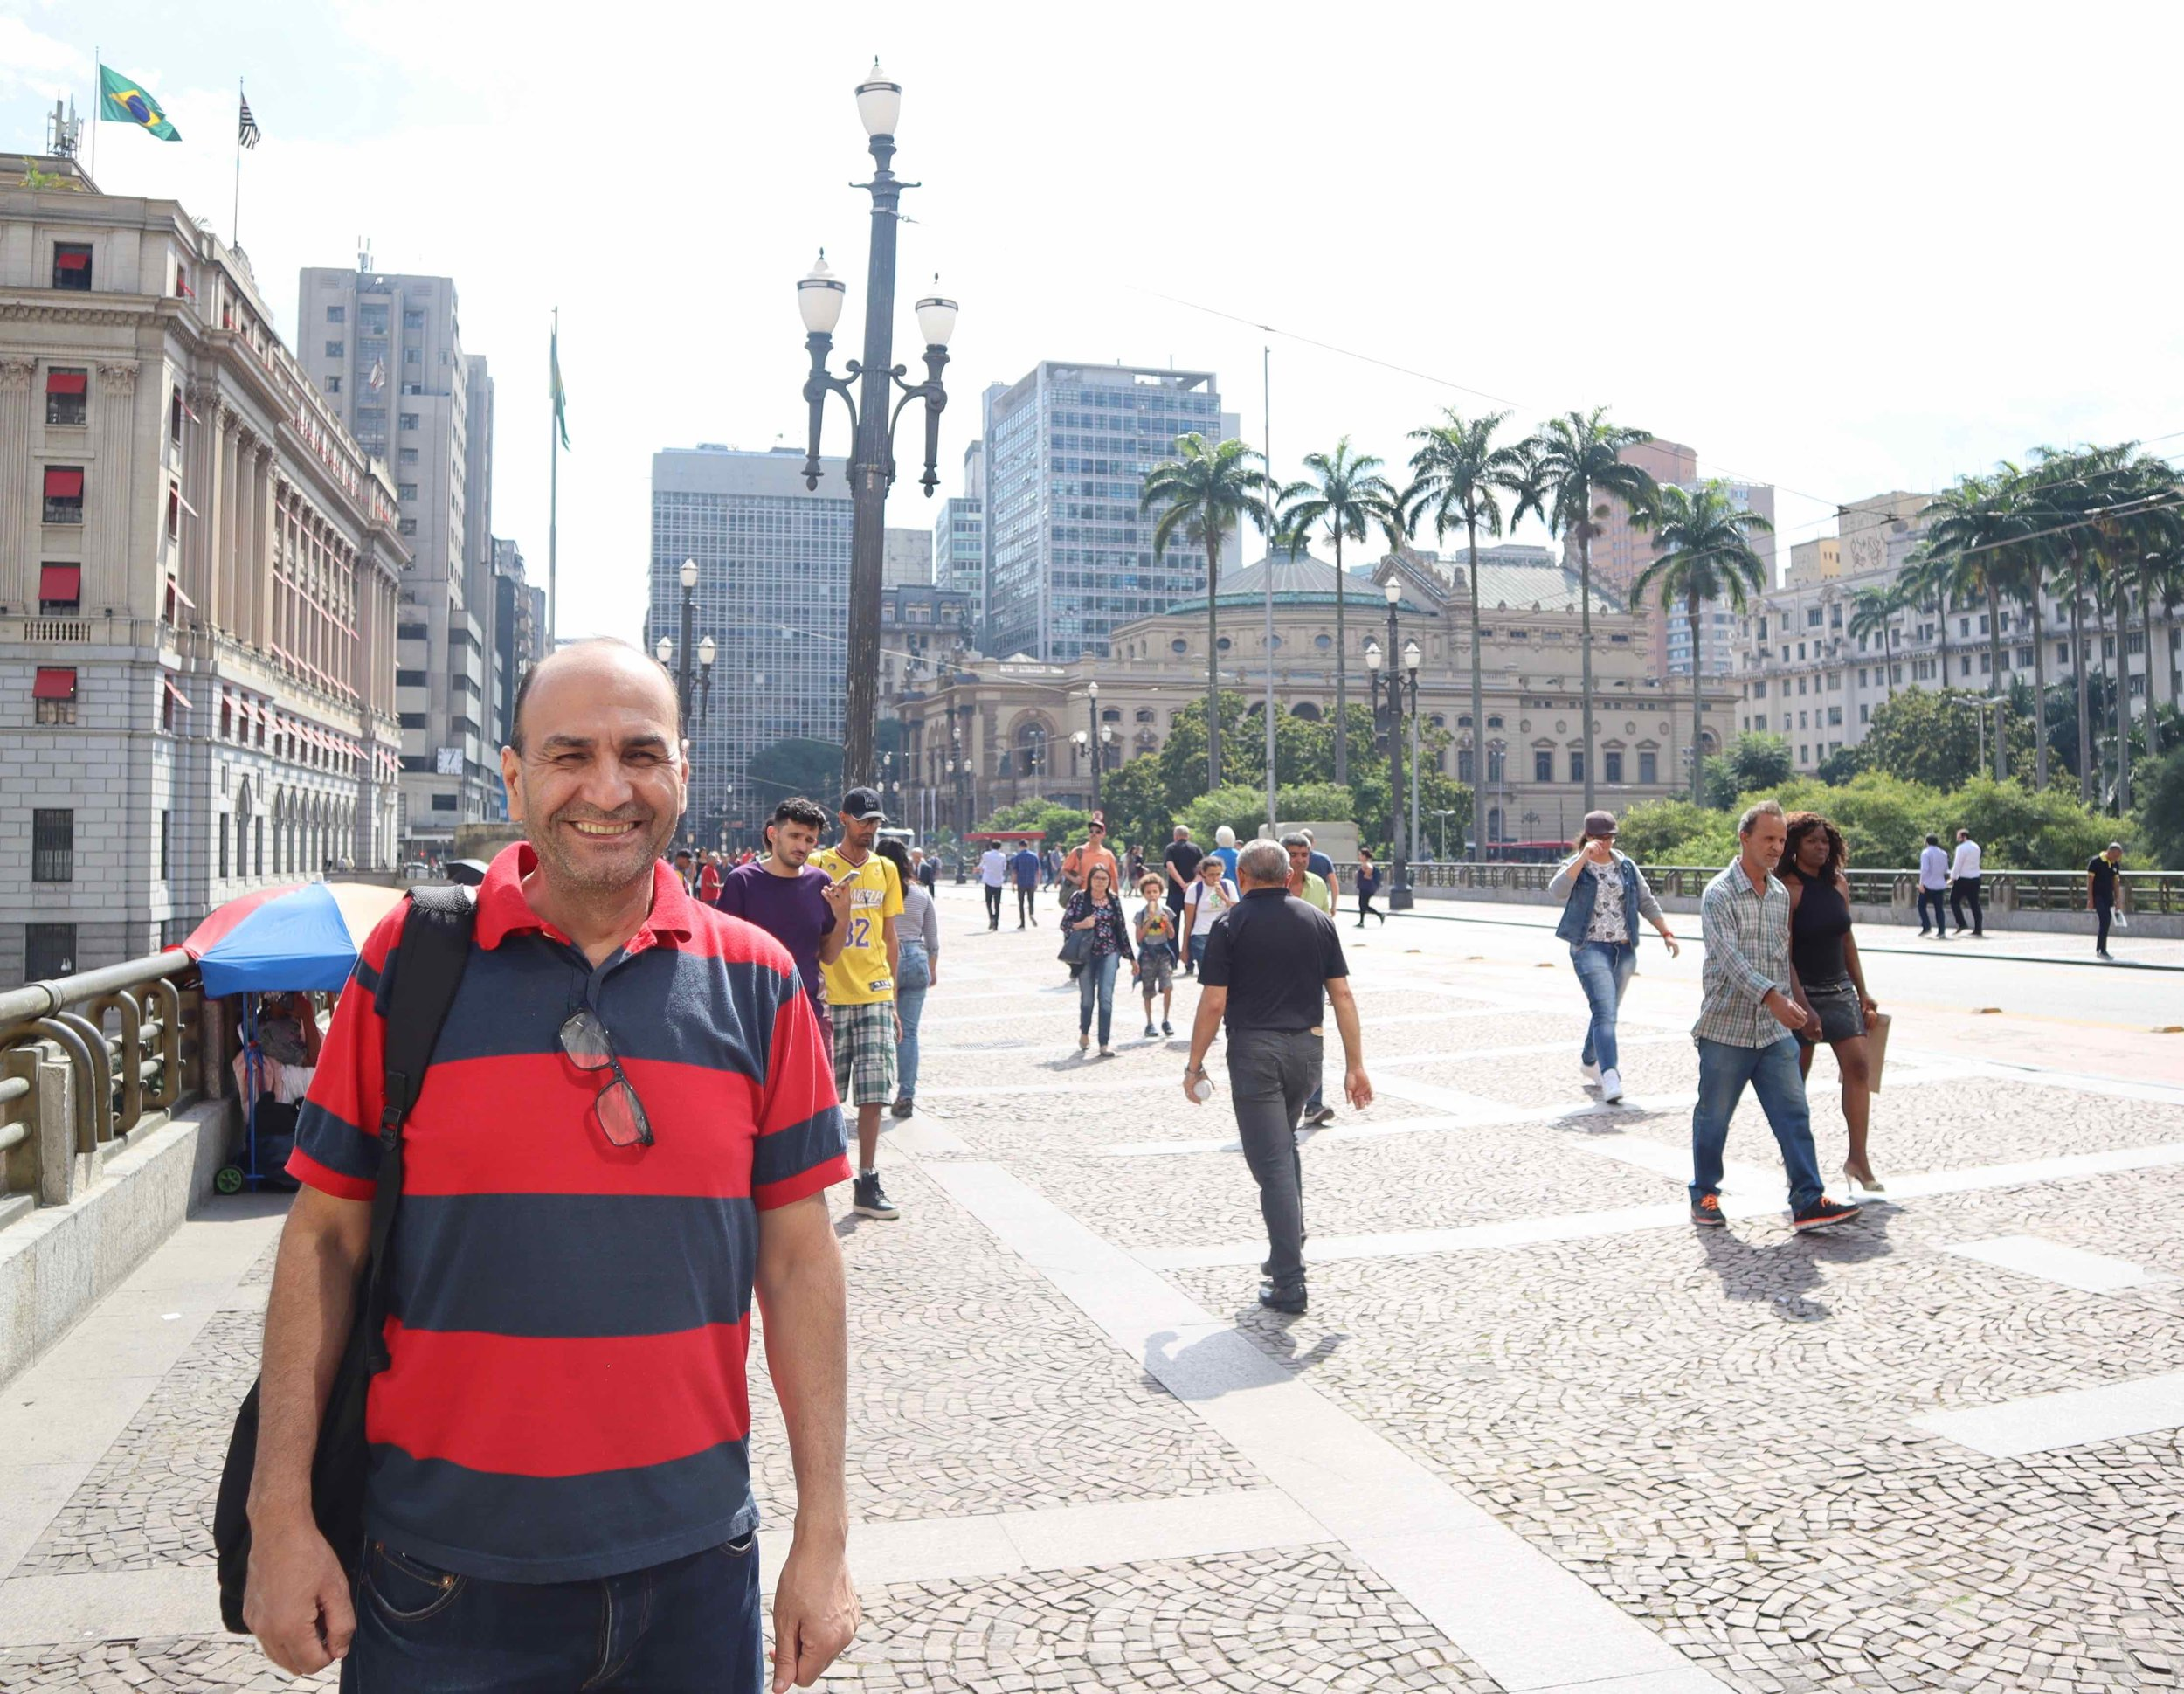 Dr Ahmad Serieh is a renowned Syrian archeologist and museum director who now lives in São Paulo and helps Syrian newcomers to learn Portuguese and settle into Brazilian life.